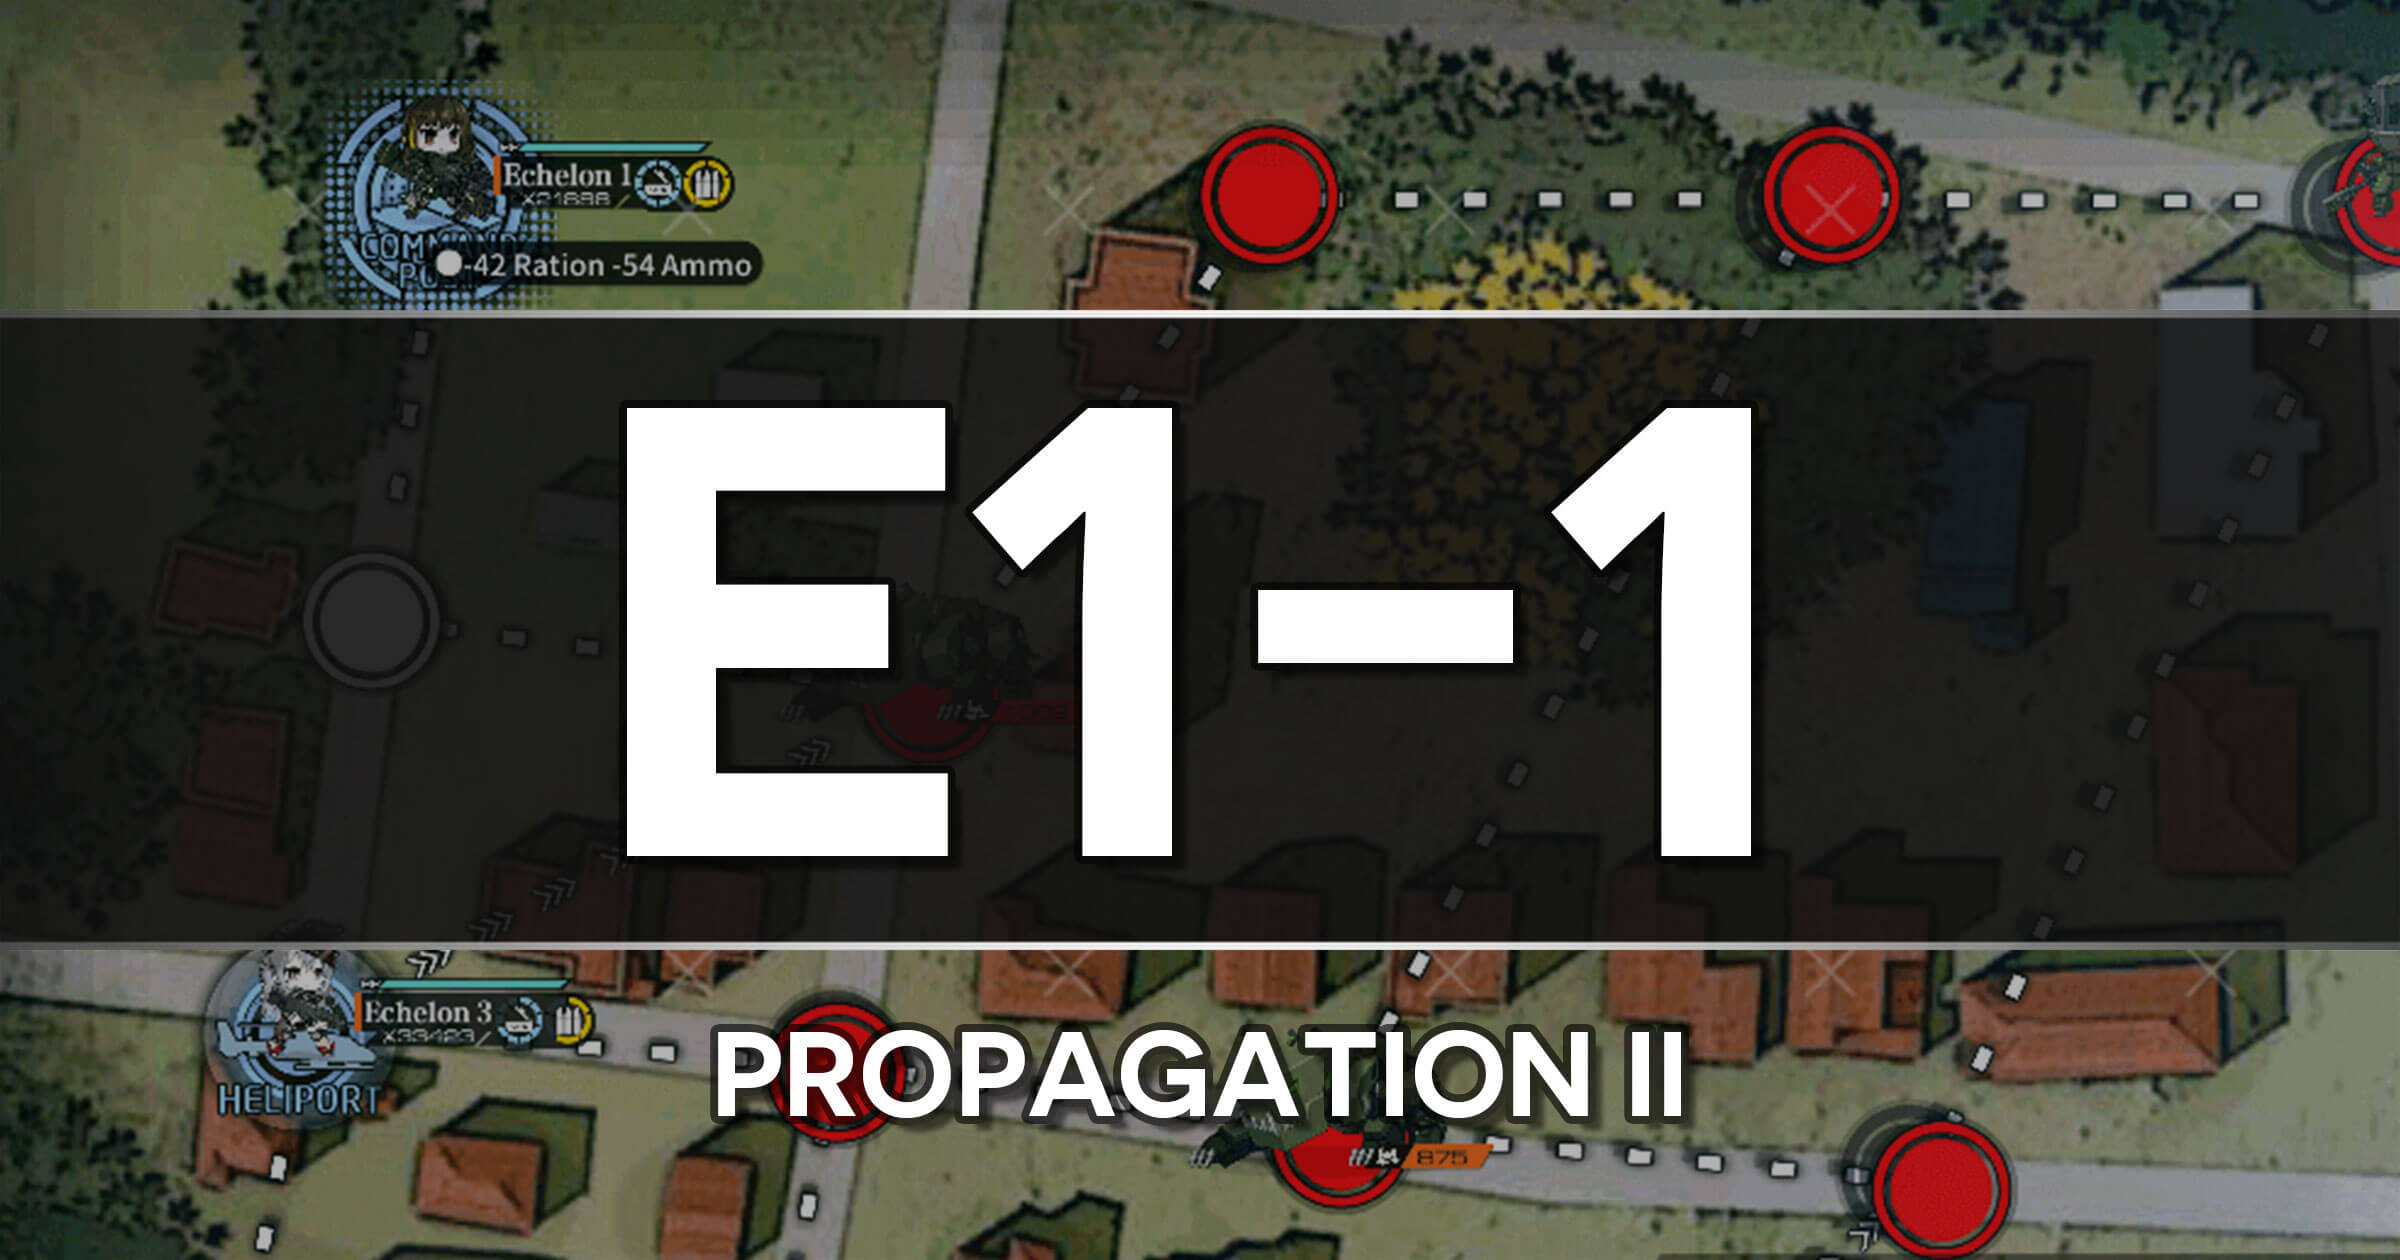 A guide to the Girls Frontline Polarized Light Event stage E1-1: Propagation II